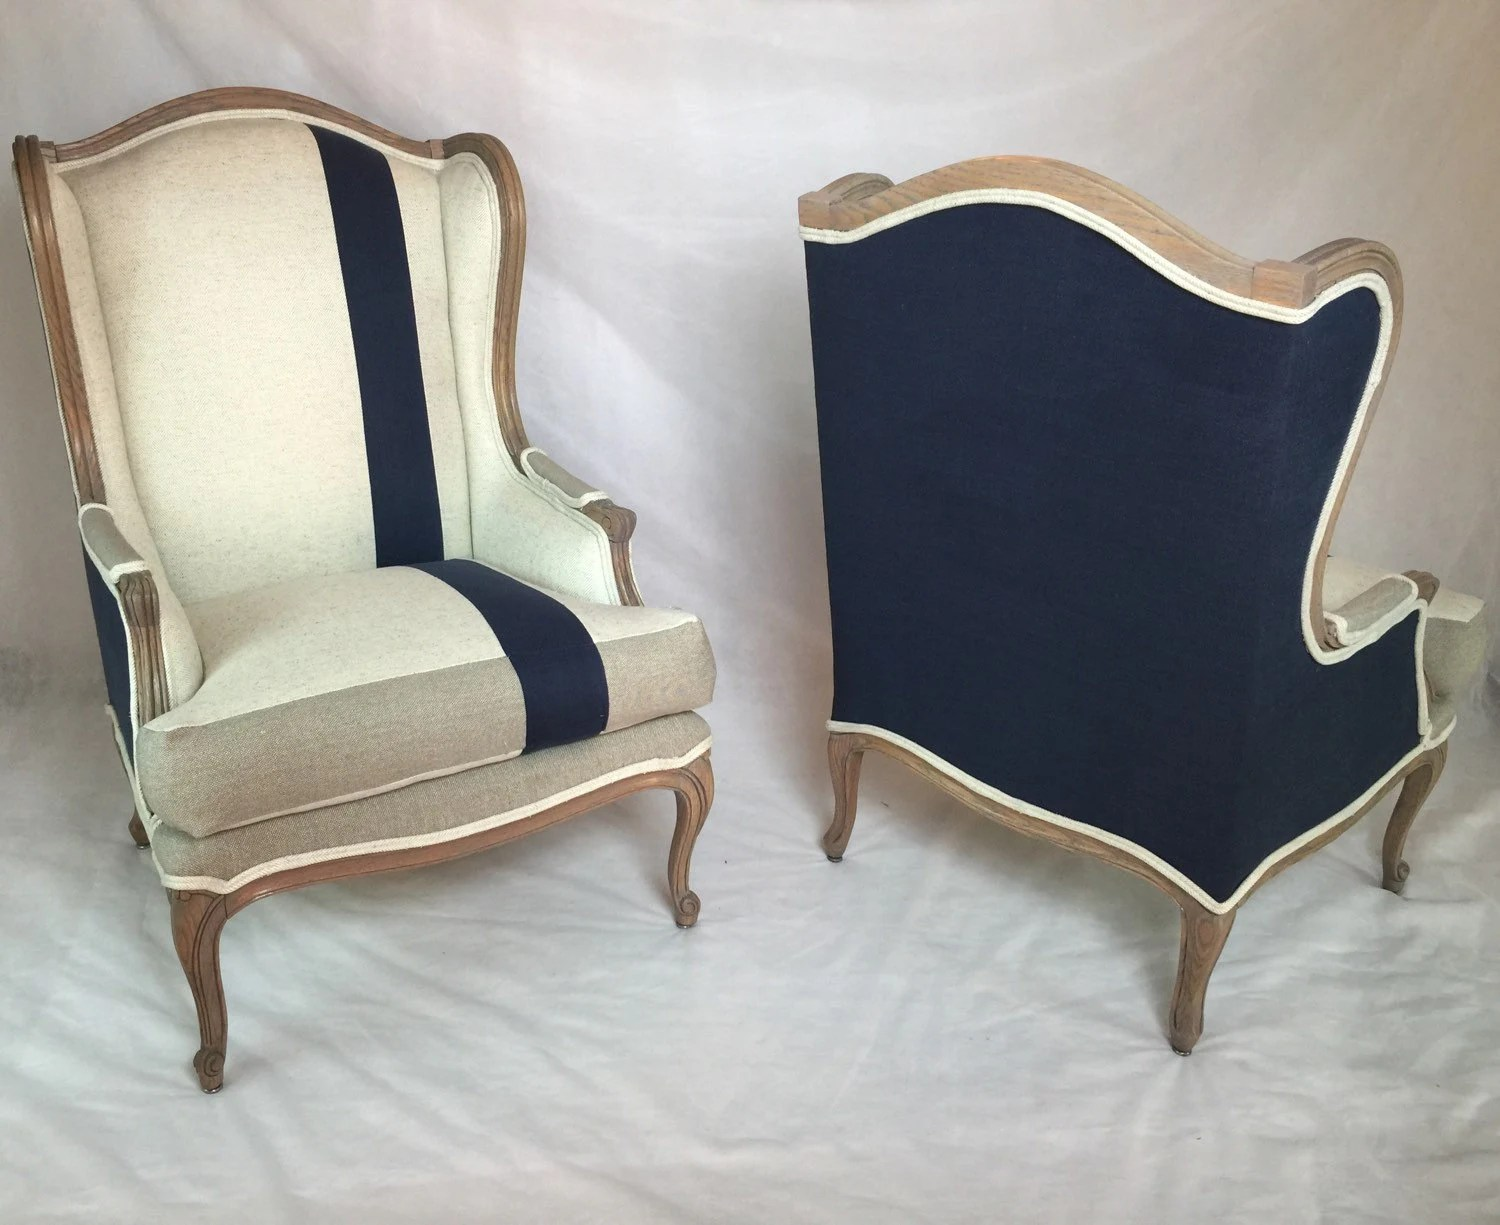 striped wingback chair 10 dining table sold can replicate pair of custom wing back chairs